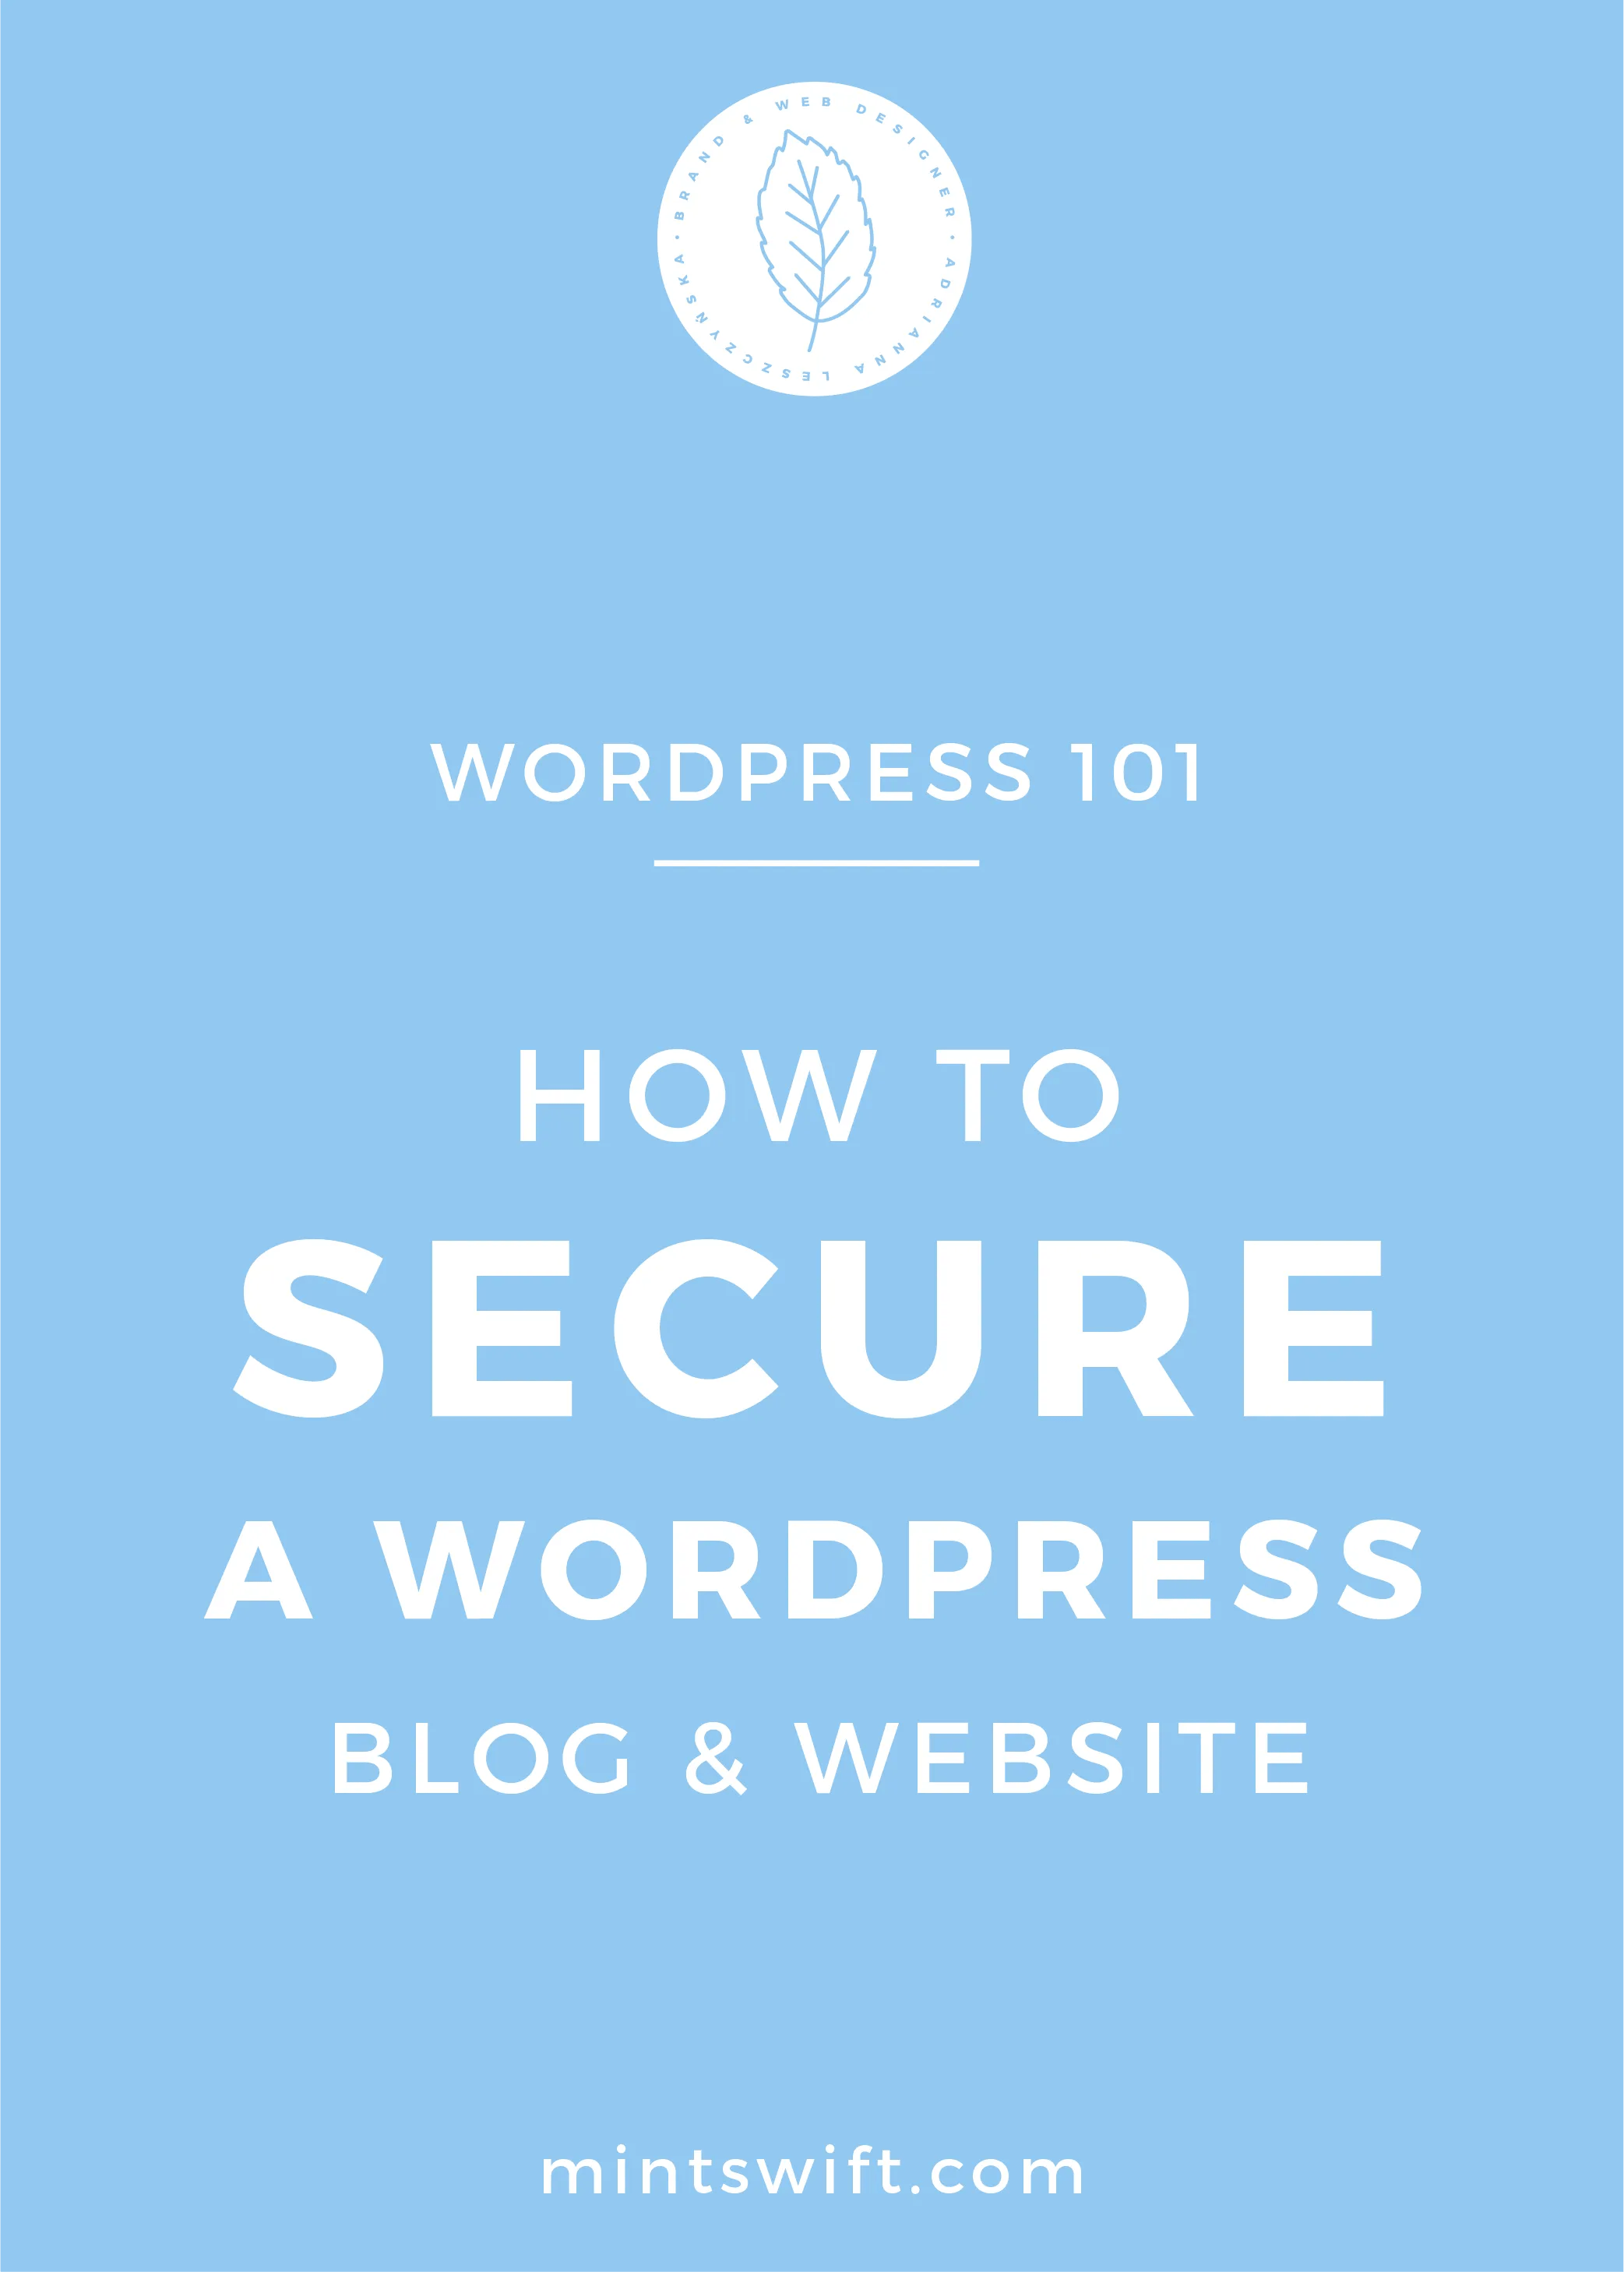 How to Secure WordPress Blog & Website